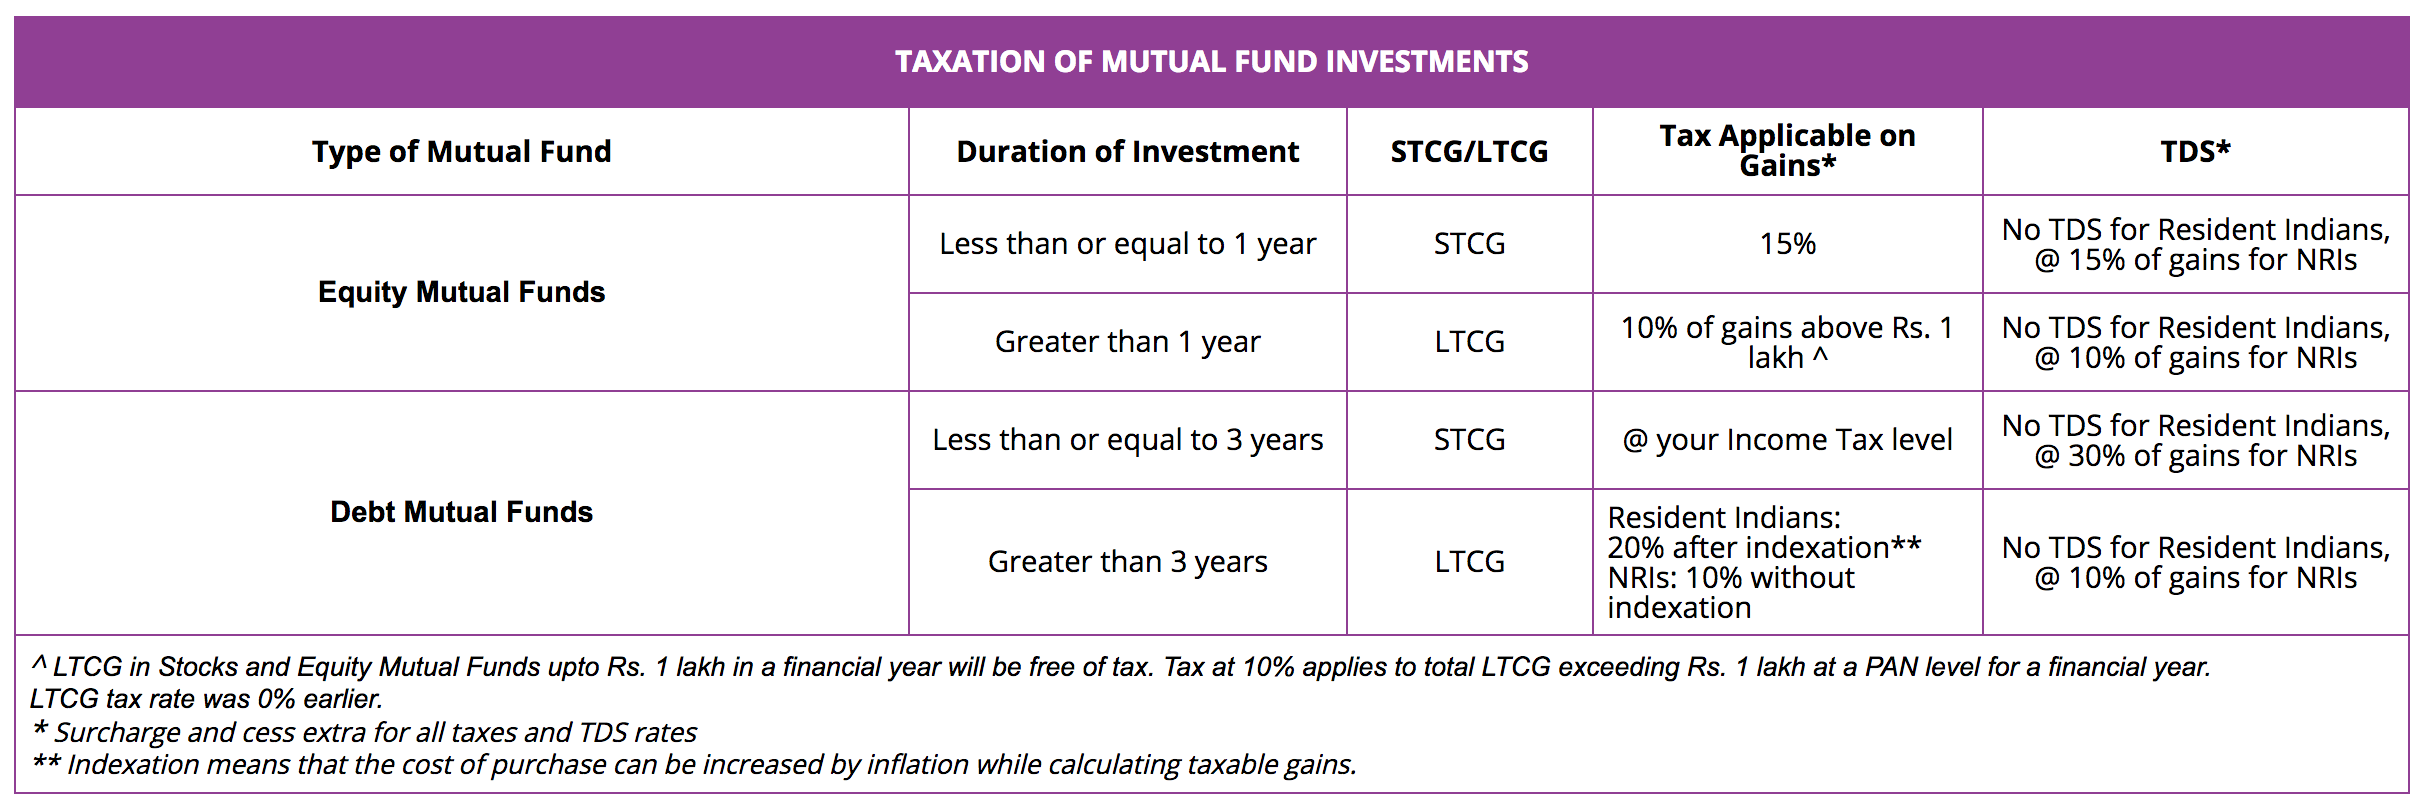 Capital-Gains-Taxation-of-Mutual-Funds-2